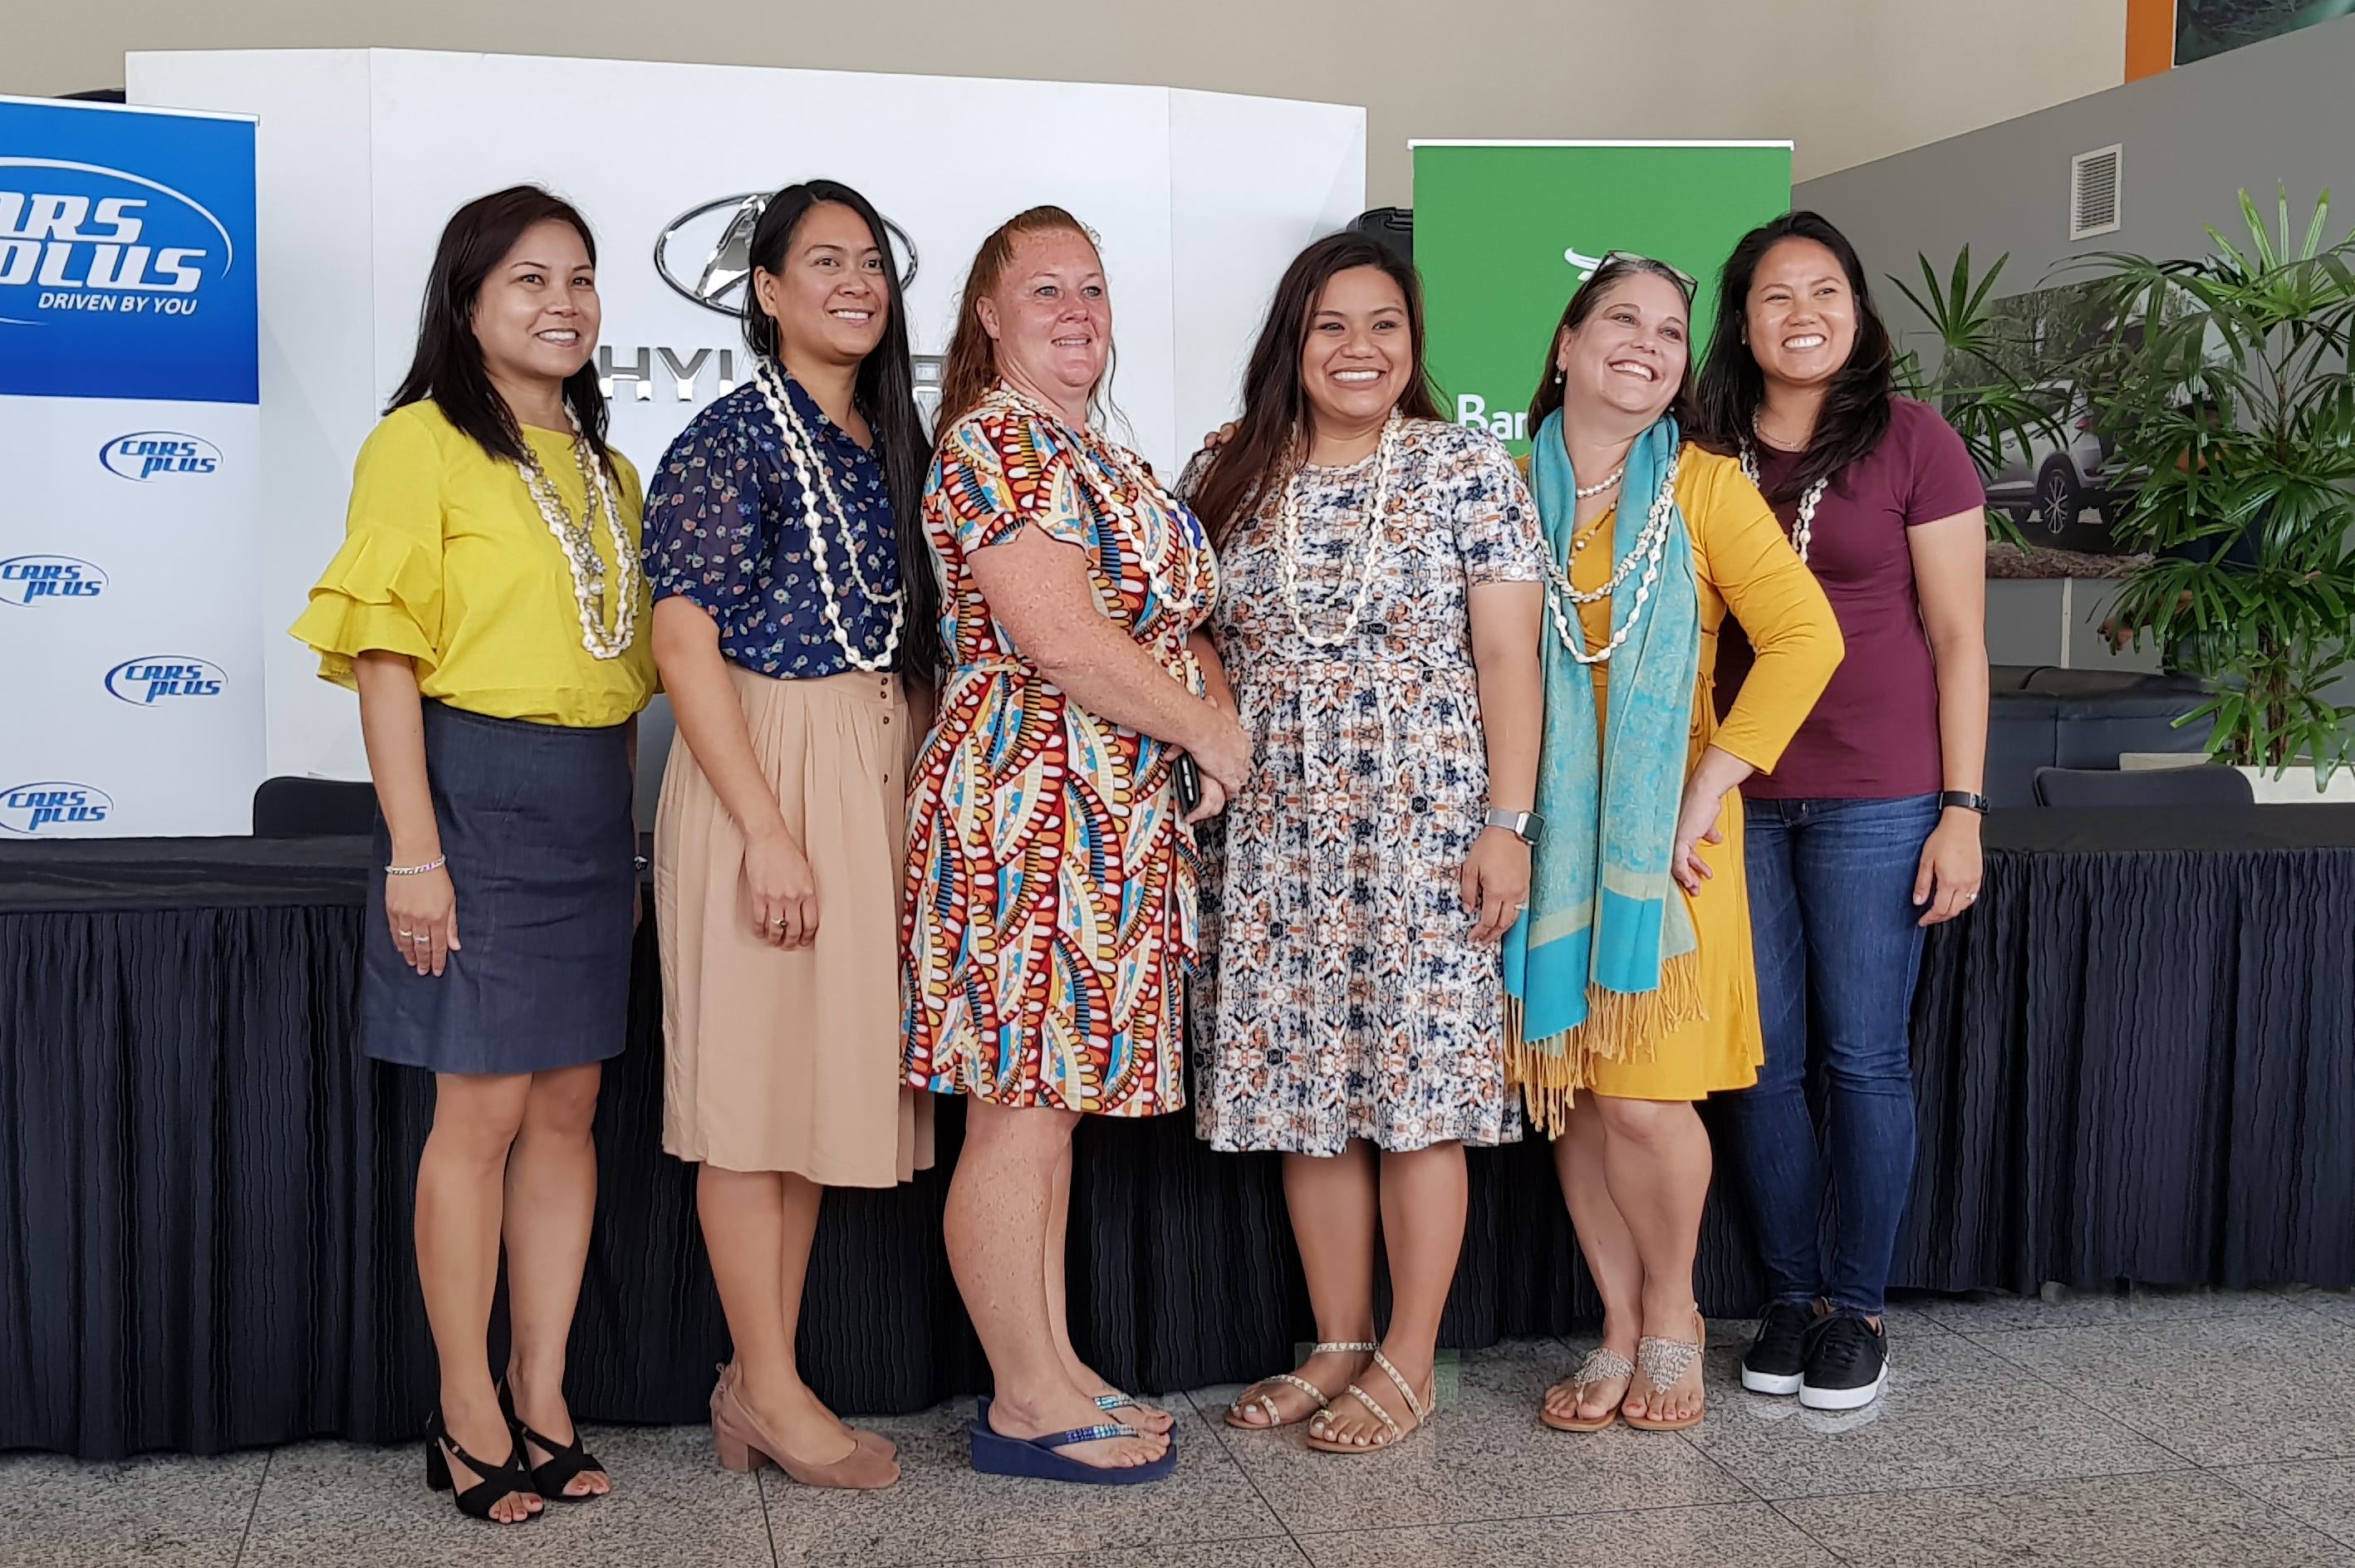 Six teachers were all smiles at Cars Plus on Monday, April 1, after being announced as the finalists for Guam's 2019 Teacher of the Year.  From left: Aileen Canos, Analyn Palugod, Jennifer Flory, Lory Danao, Clarice Lowe Mesa and Allyson Iseke-Perez.